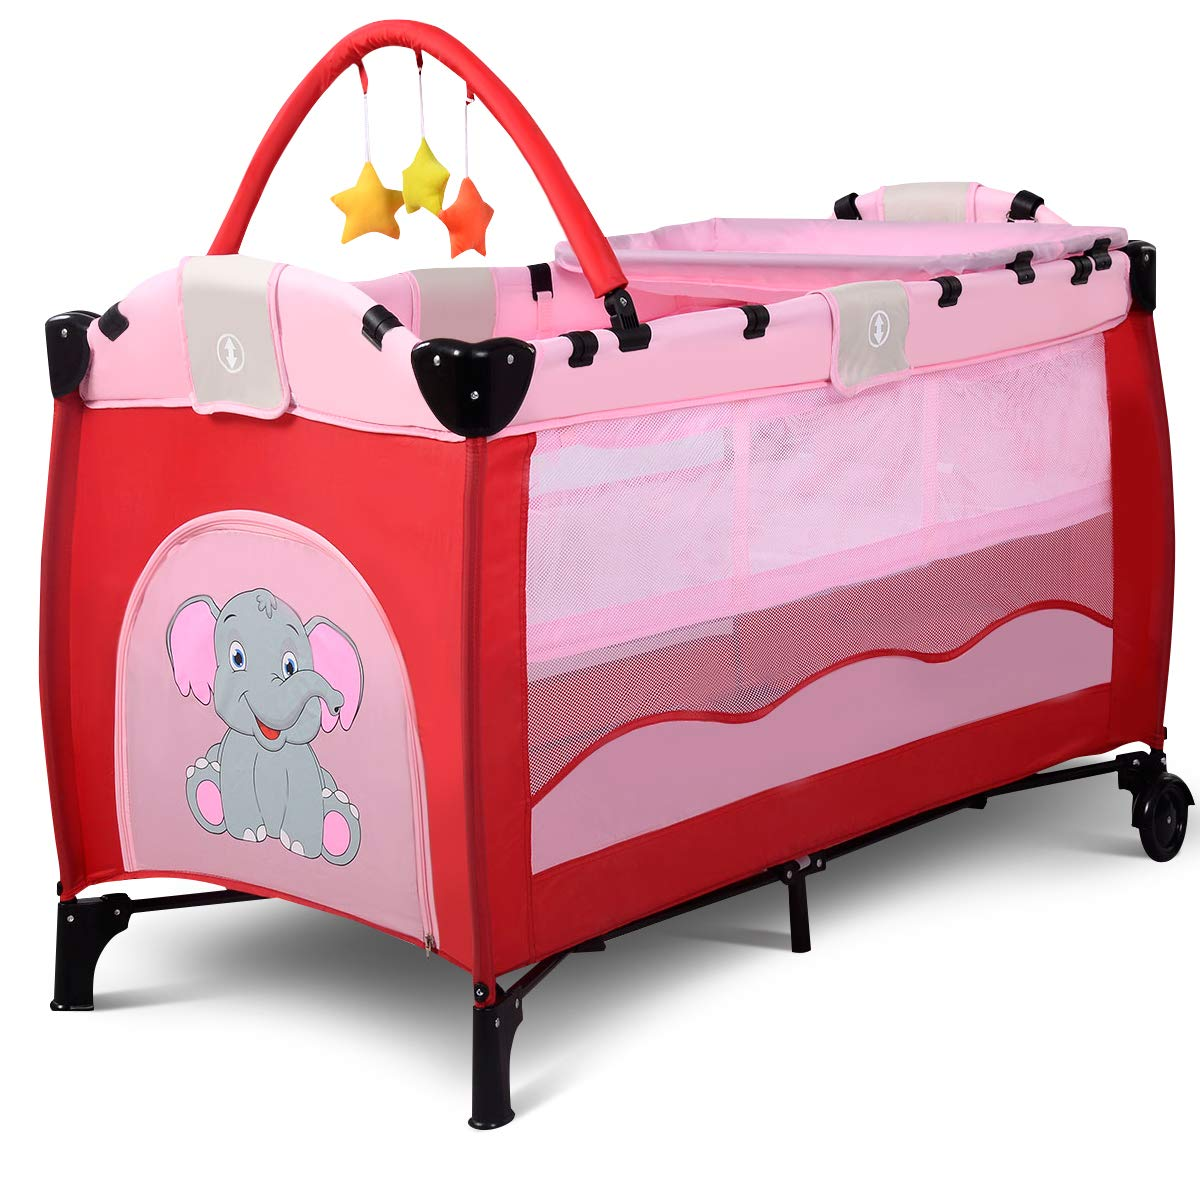 BABY JOY Baby Crib Foldable Playpen Portable Playard Pack Travel Infant Bassinet Bed with 2 Lockable Wheels Diaper Changing Table and Baby Toys (Pink)